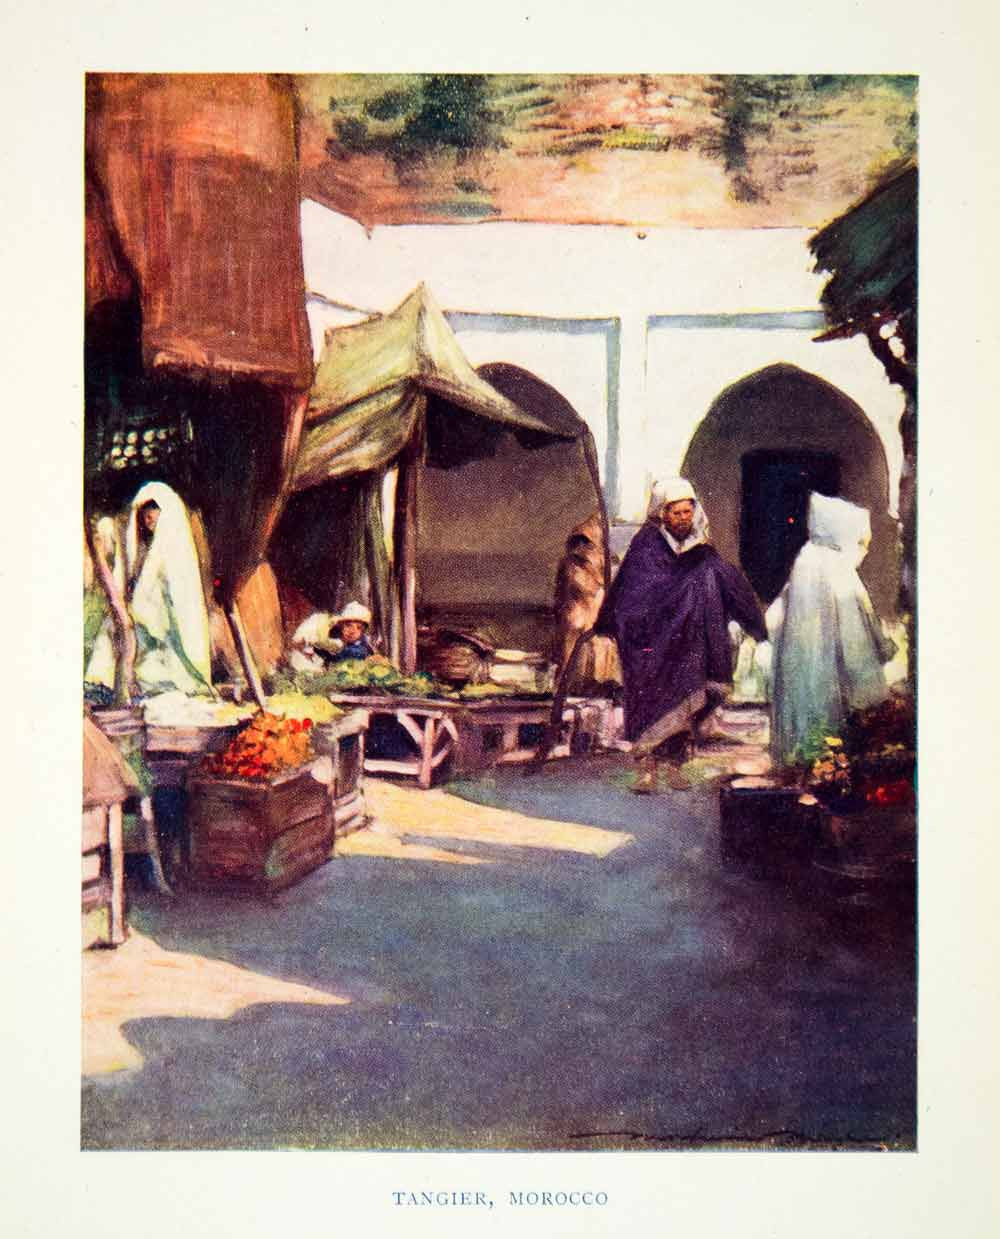 1902 Print Cityscape Street Scene Tangier Morocco Market Goods Mortimer XGYC6 - Period Paper